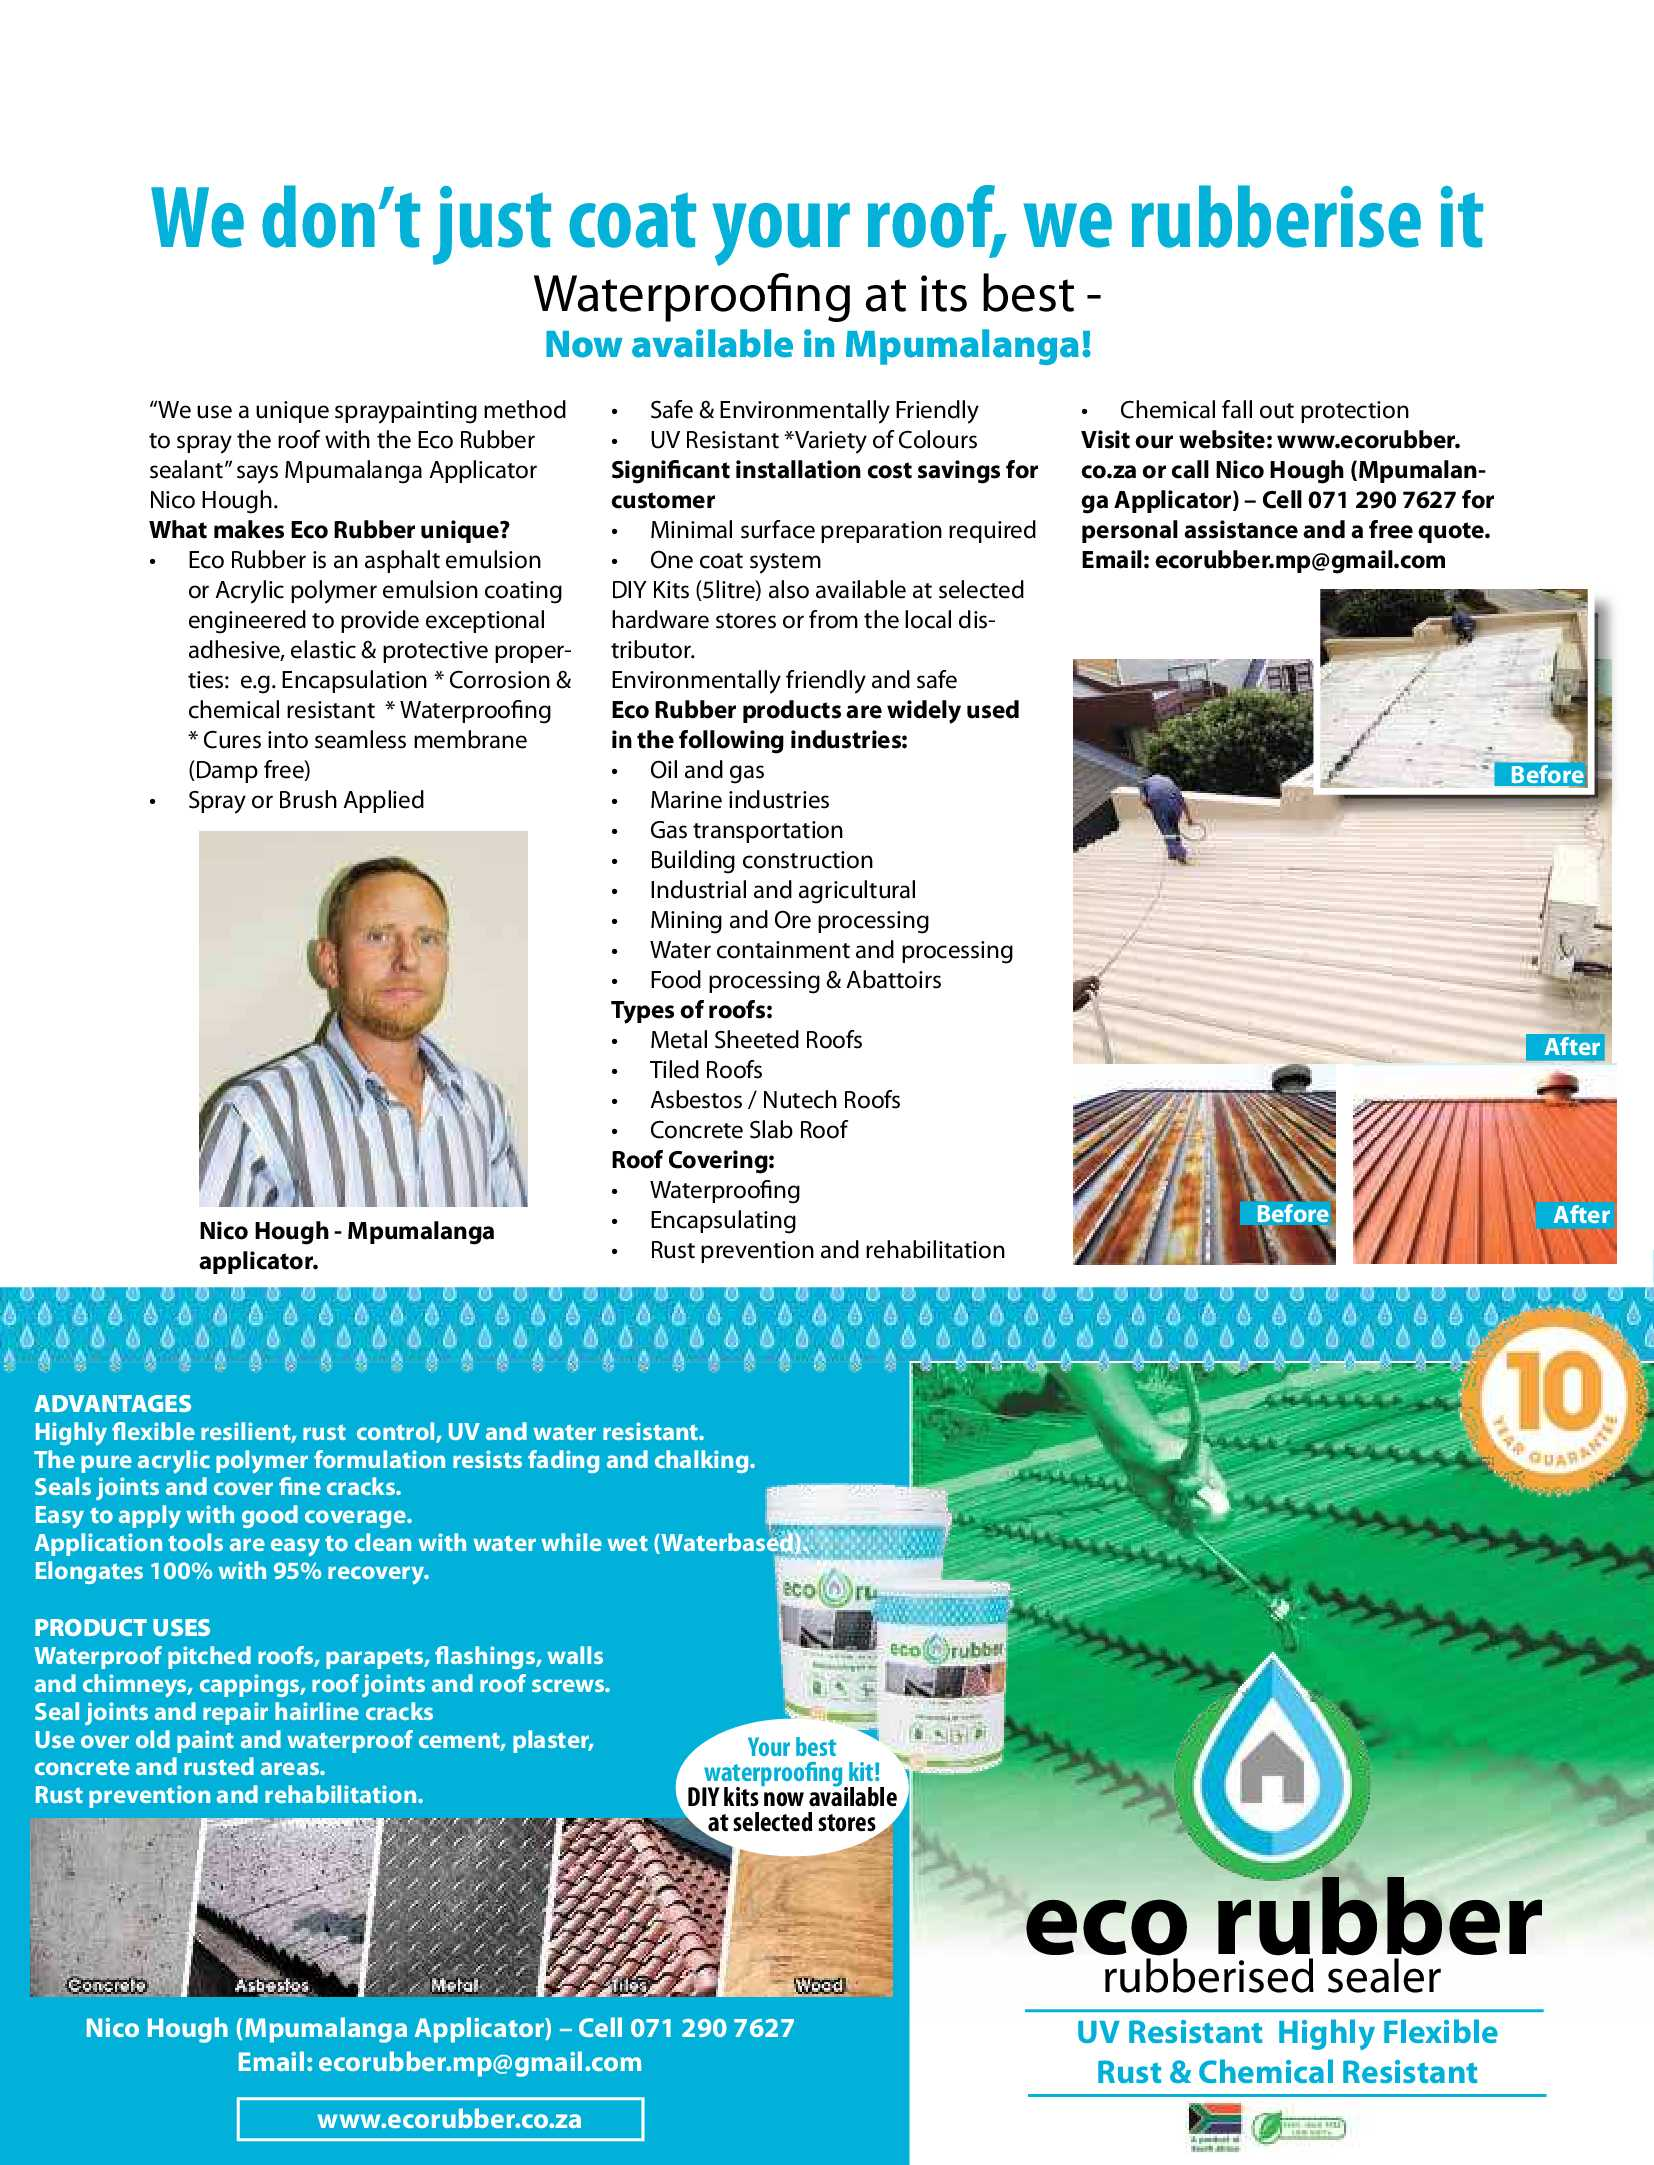 get-middelburg-june-2017-epapers-page-29